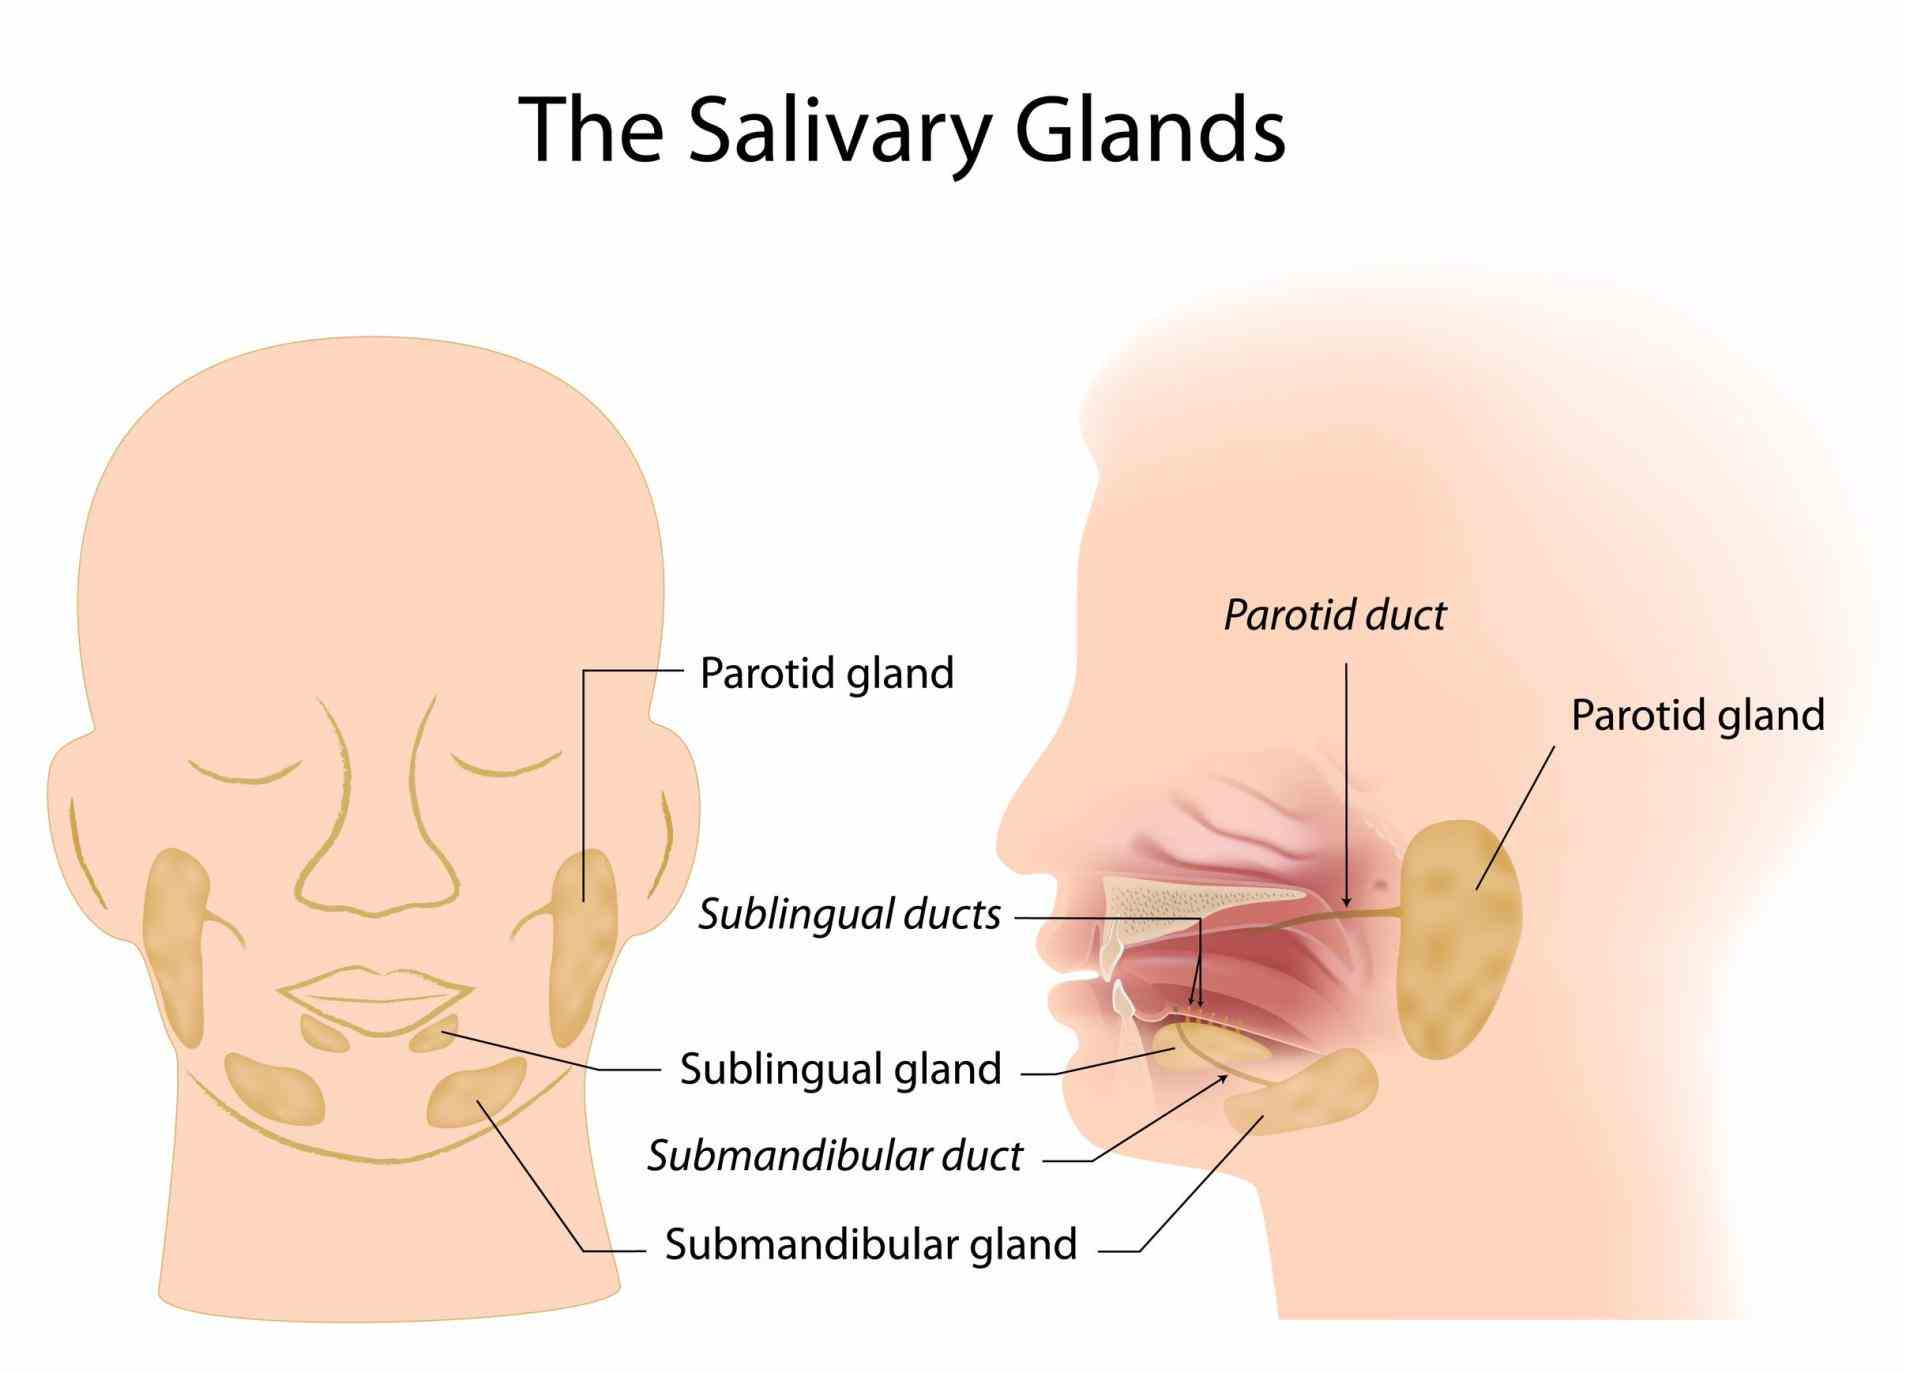 salivary glands that arranged in pairs called the parotid sublingual and submandibular they primarily produce saliva the Location Of